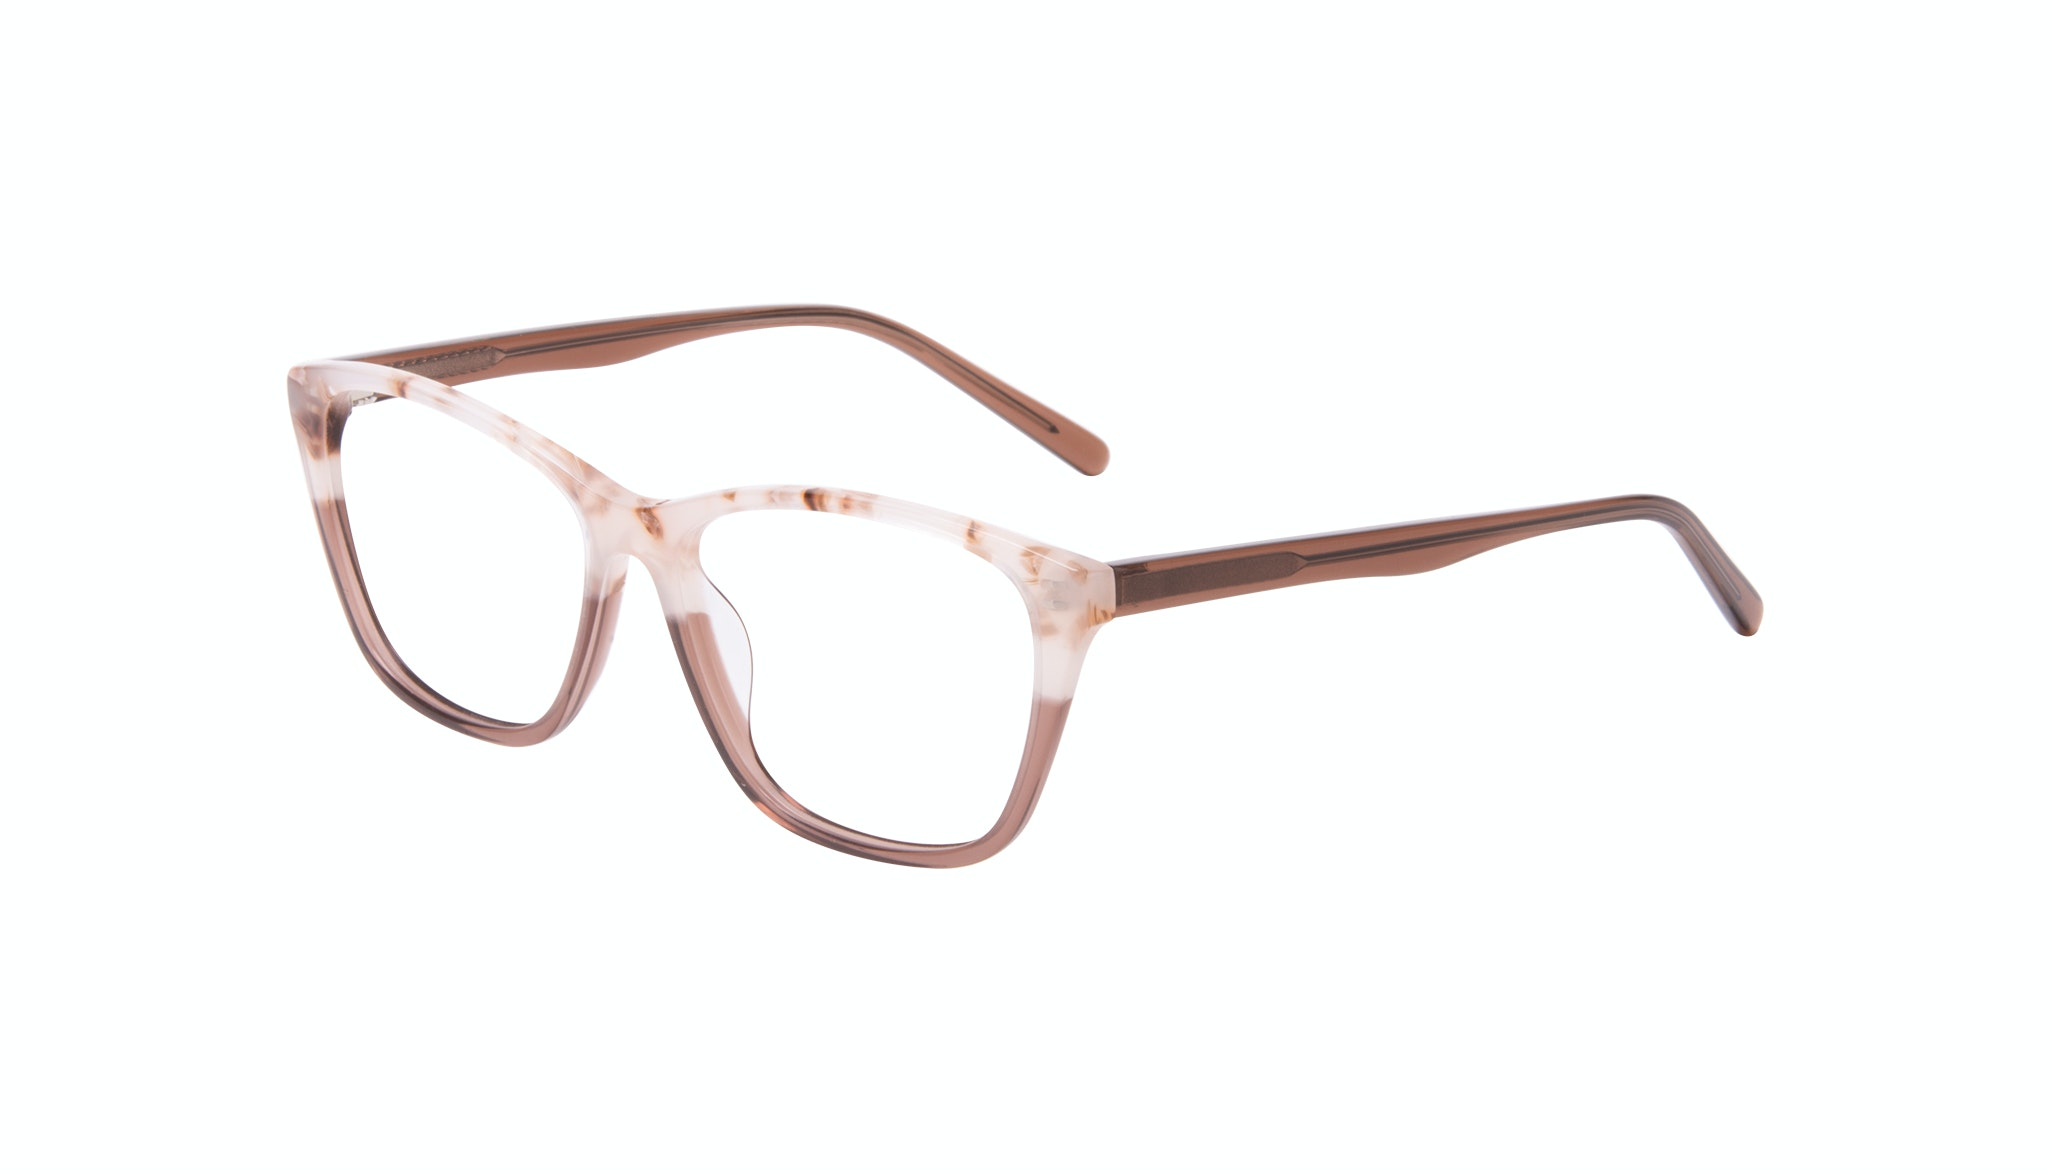 Affordable Fashion Glasses Cat Eye Rectangle Eyeglasses Women Myrtle Frosted Sand Incliné